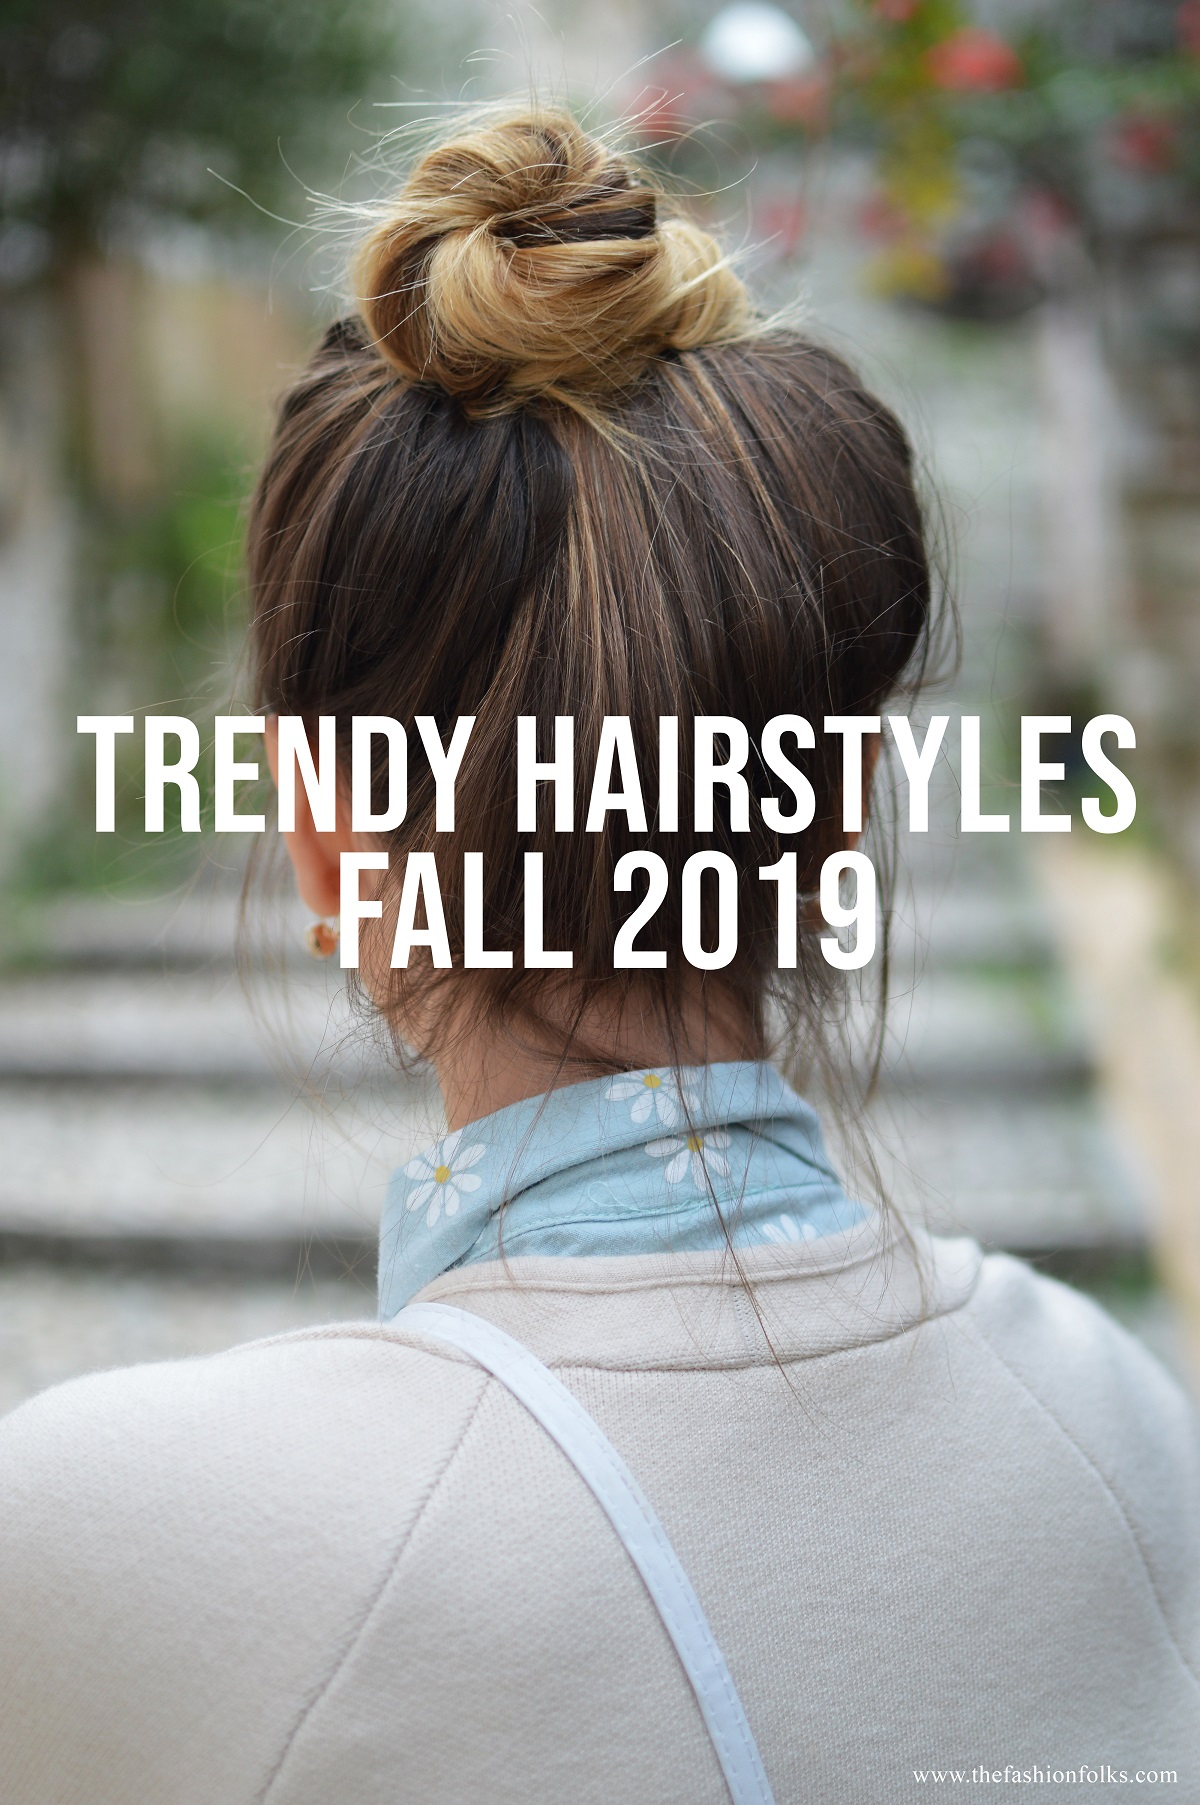 Trendy Hairstyles Fall 2019